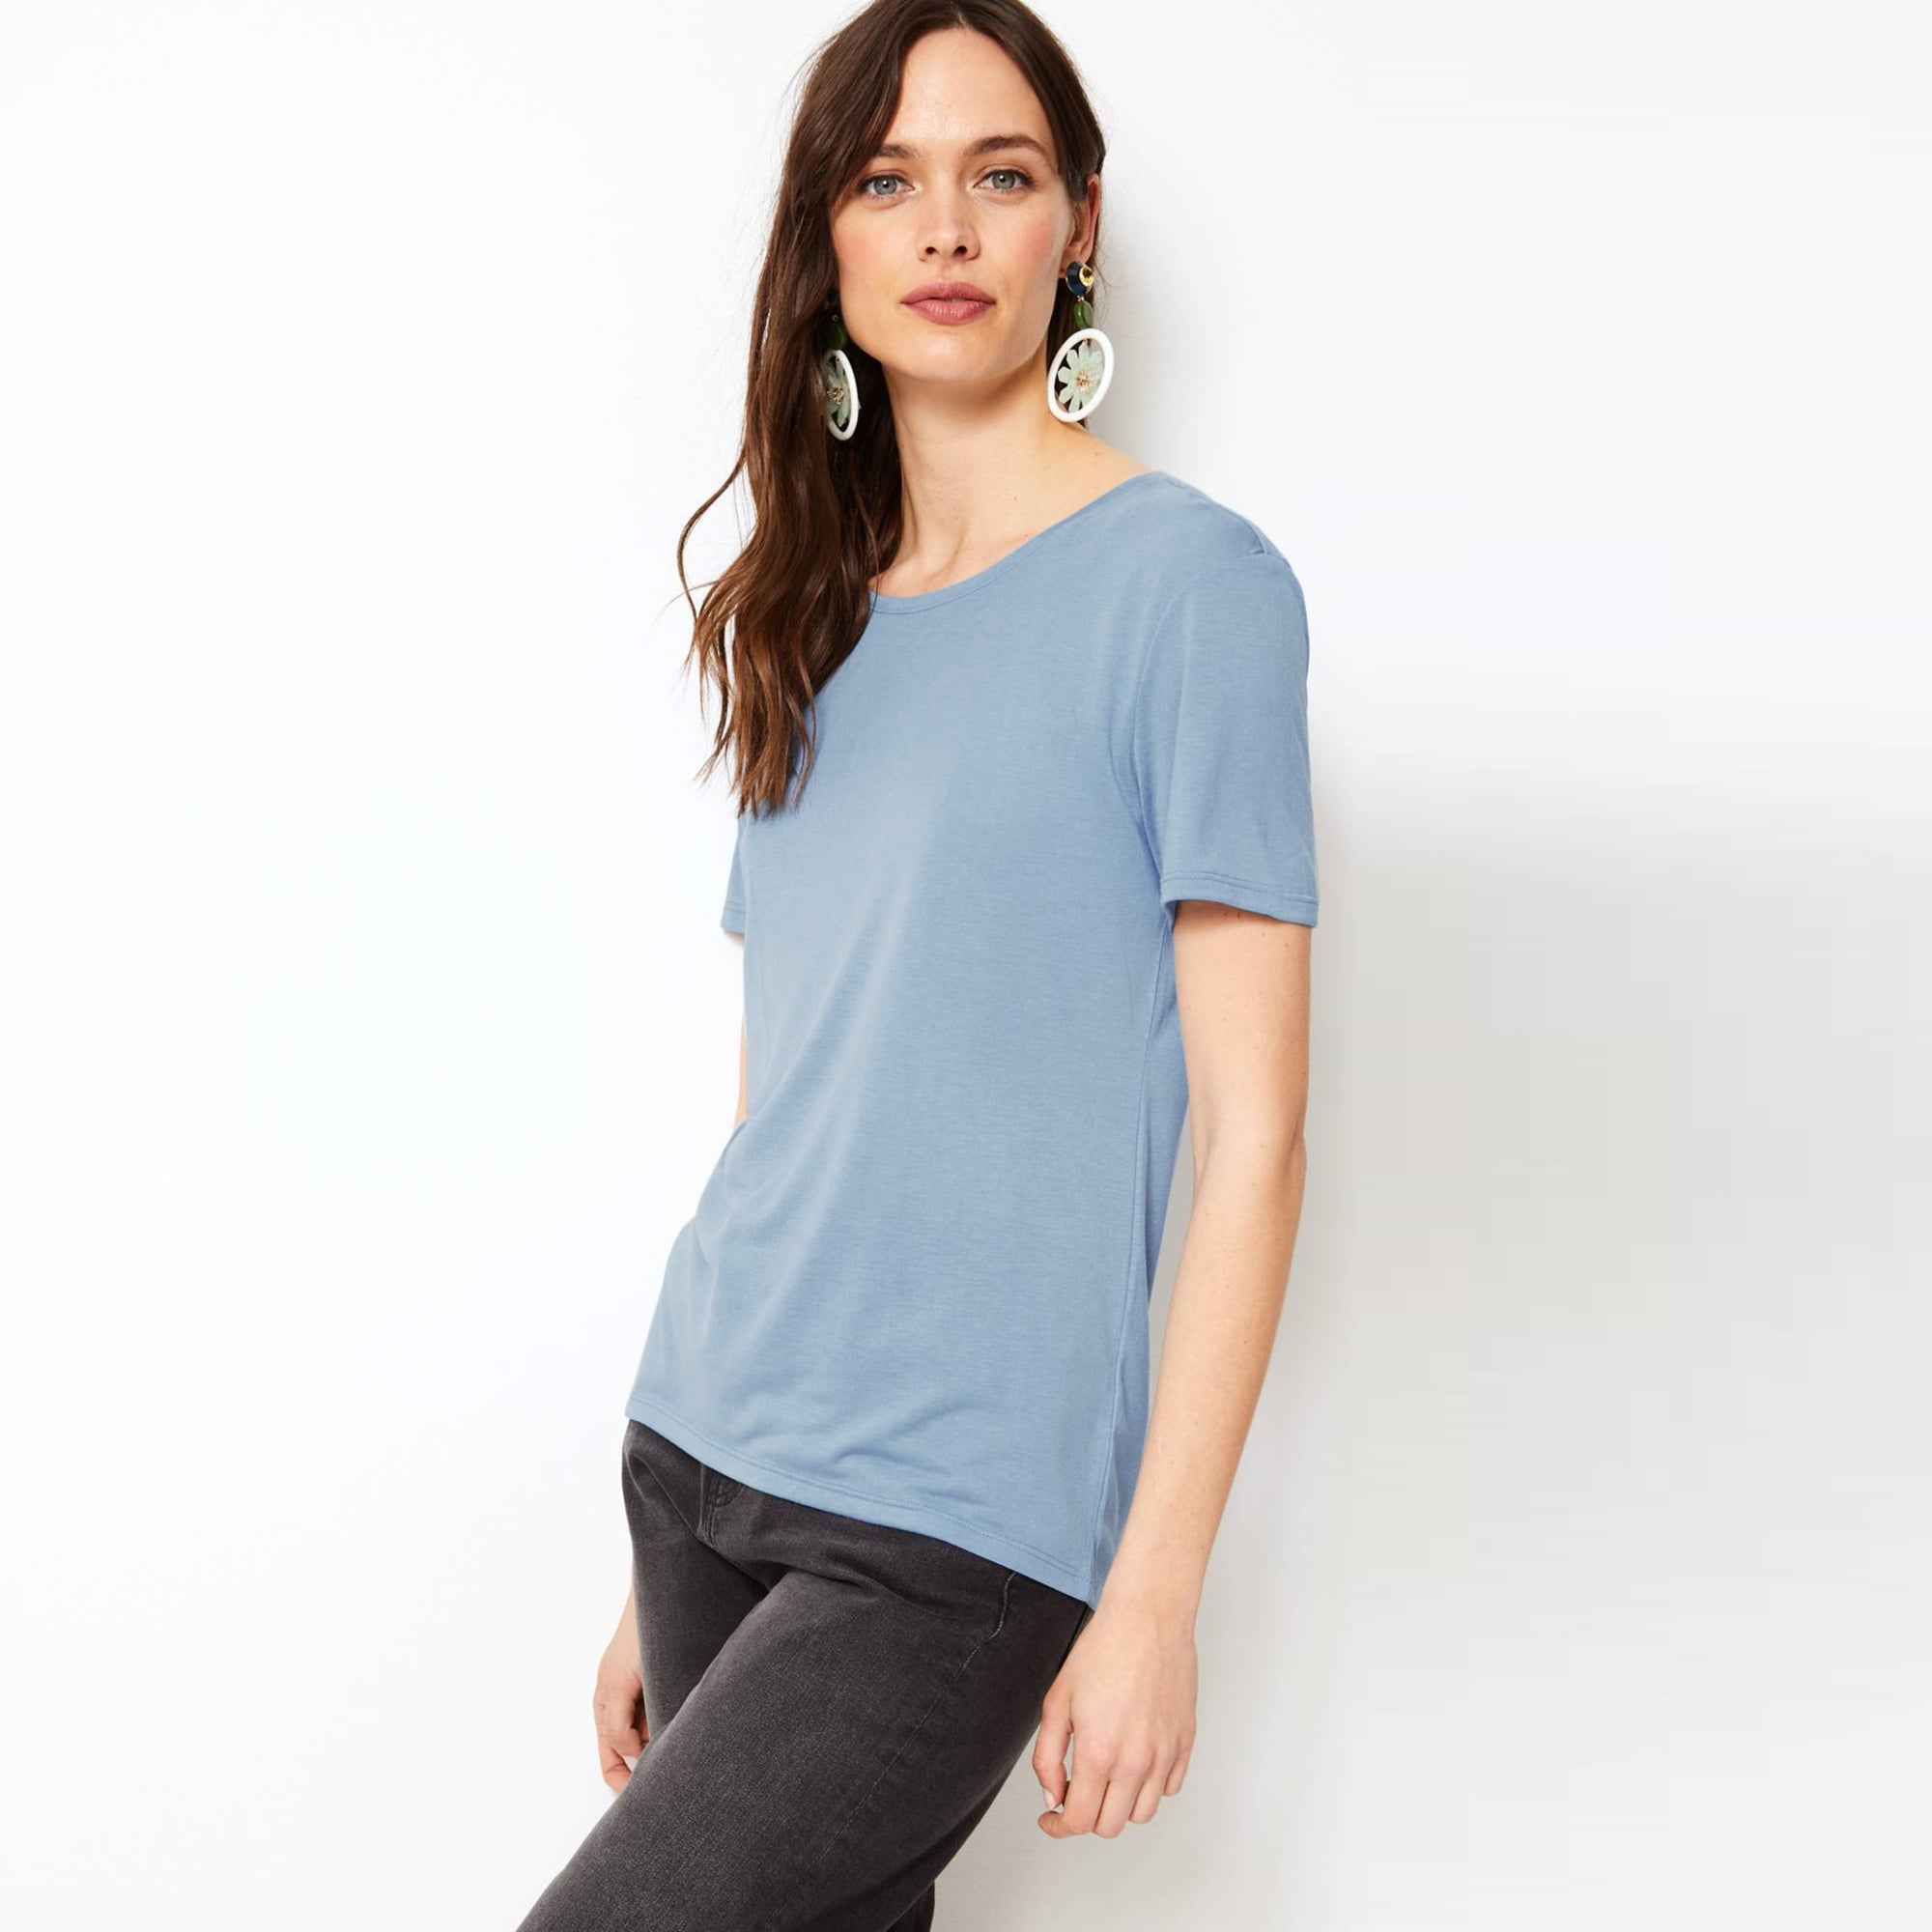 stylish design hot sales best selection of 2019 Zara Cut Label Half Sleeve Stylish Viscose Tee Shirt For Women-BE8506